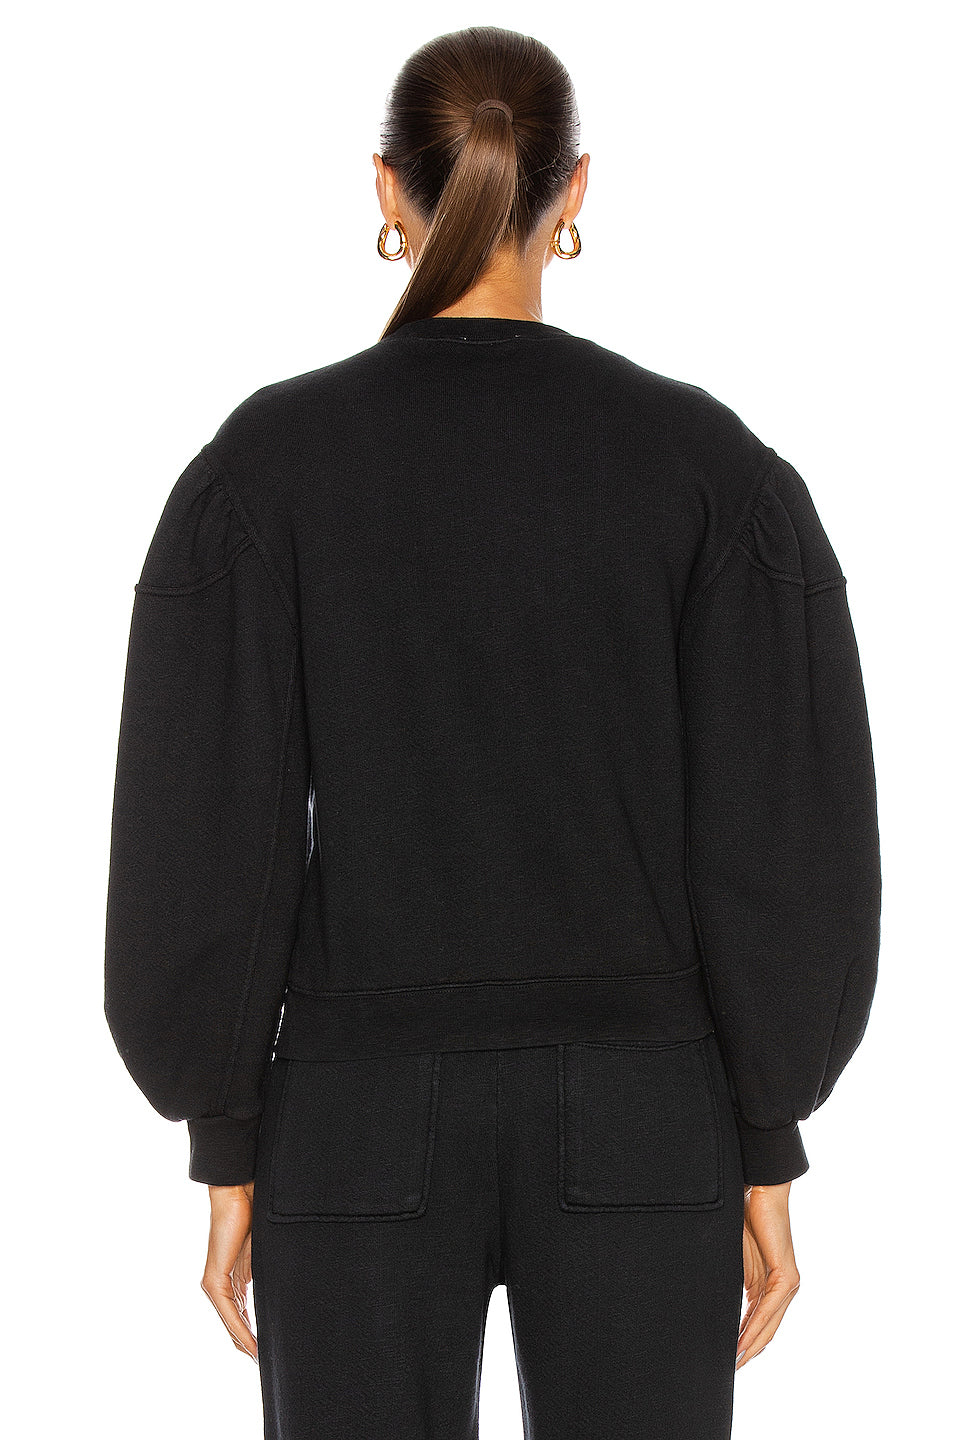 Ulla Johnson Ava Pullover